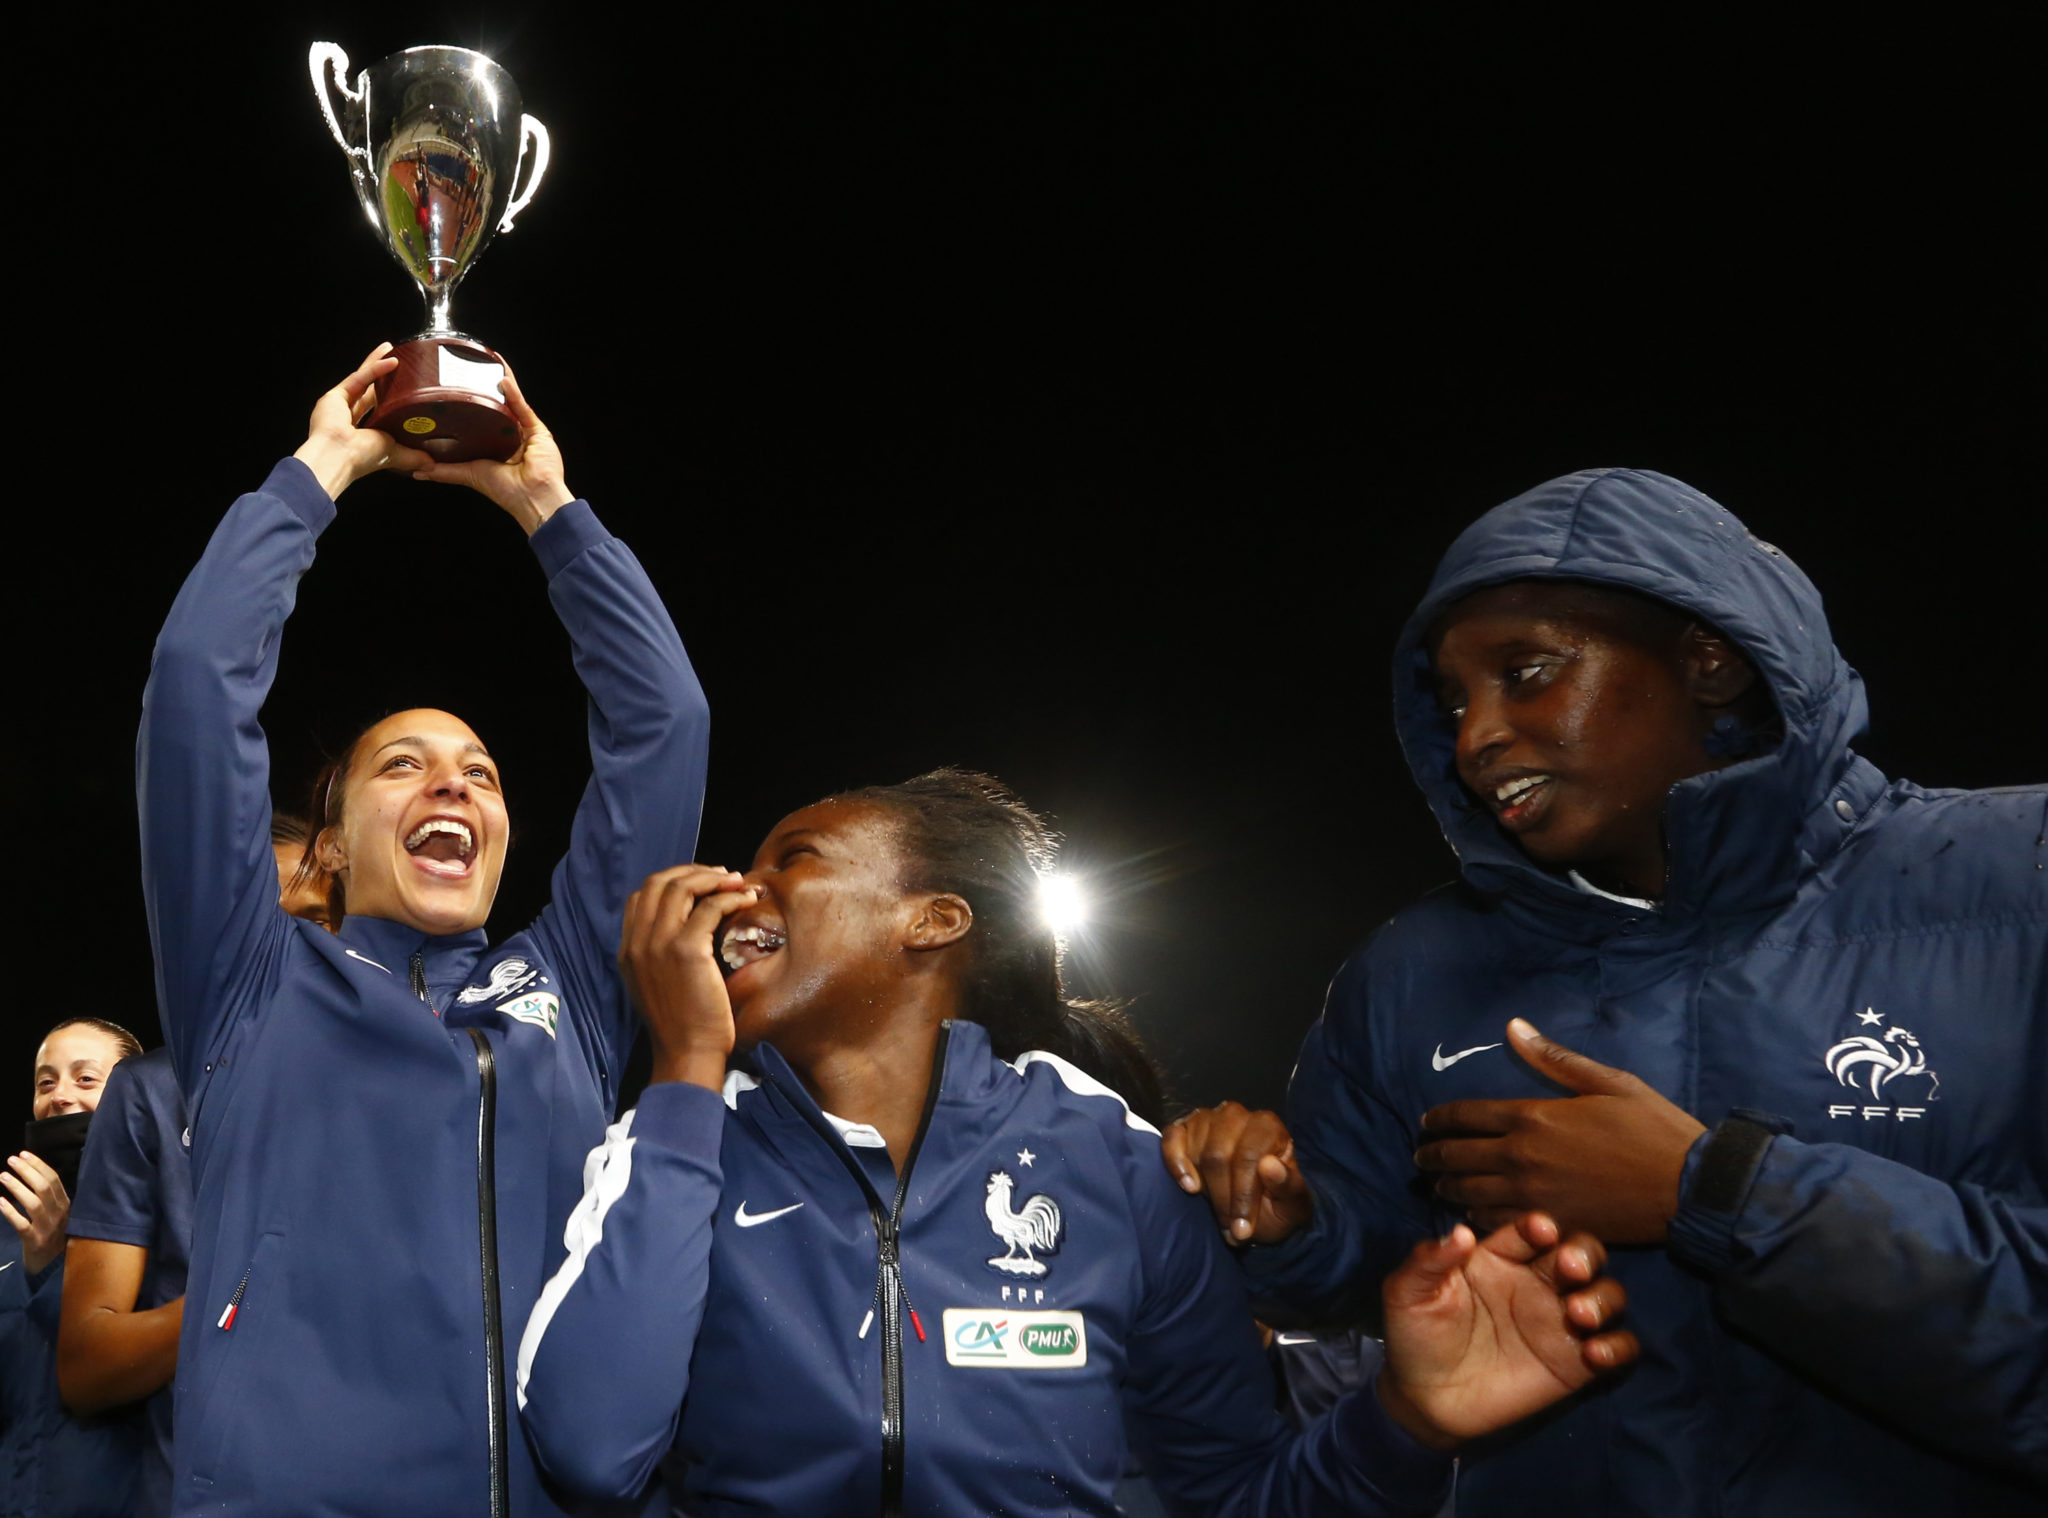 England v France - The Cyprus Cup Final